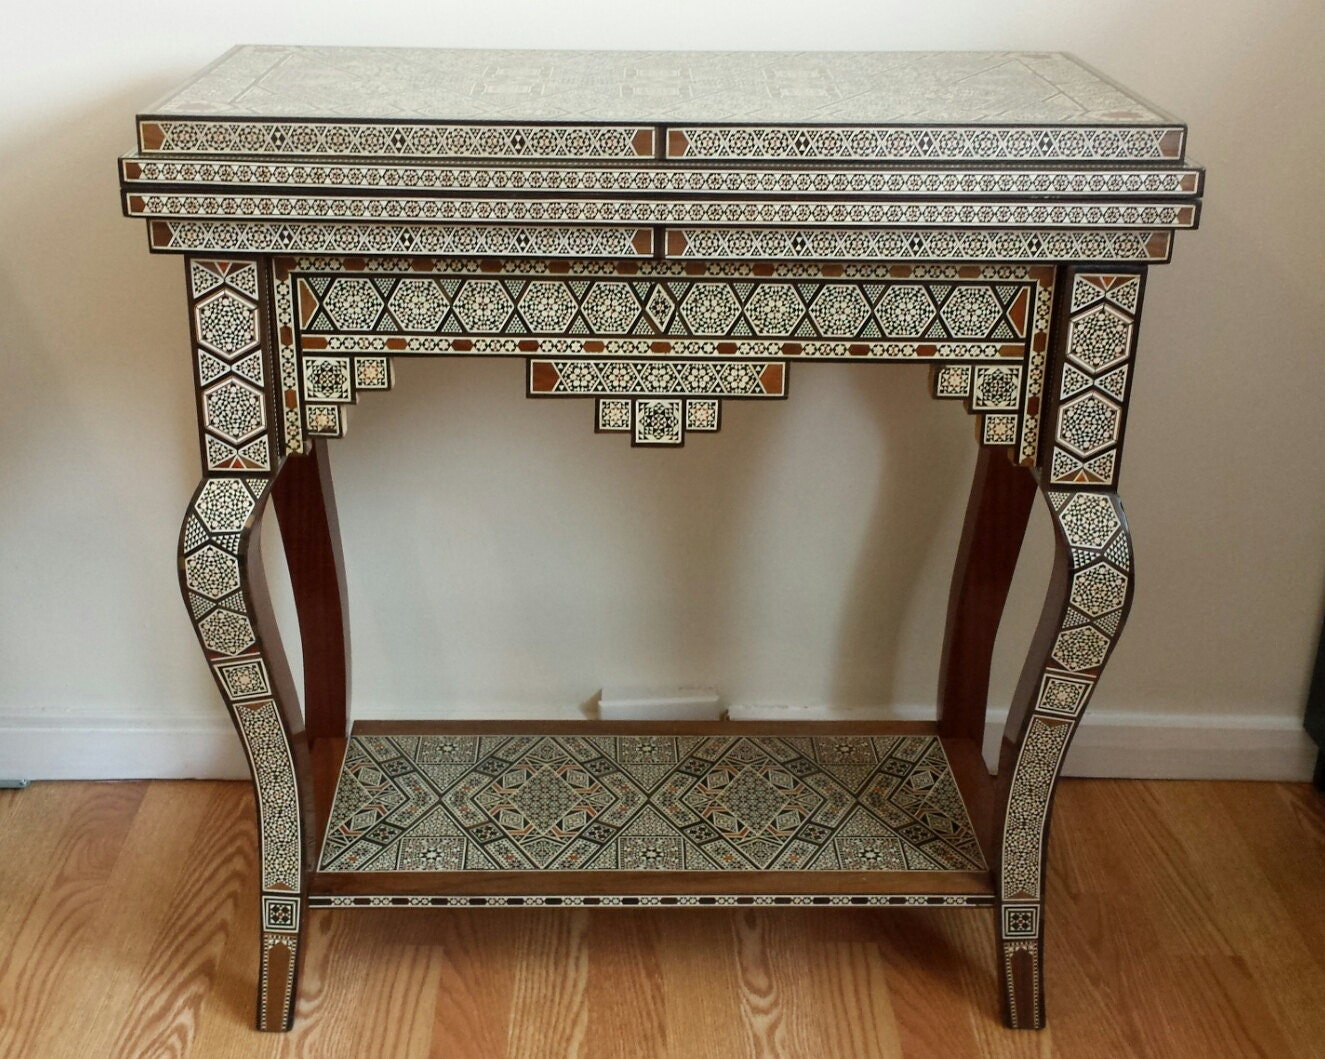 Side Table, Poker Table, Game Table, Card Table, Vintage Table, Mosaic Table,  Wooden Home Decor, Backgammon Table, Chess Set, Syrian Art.